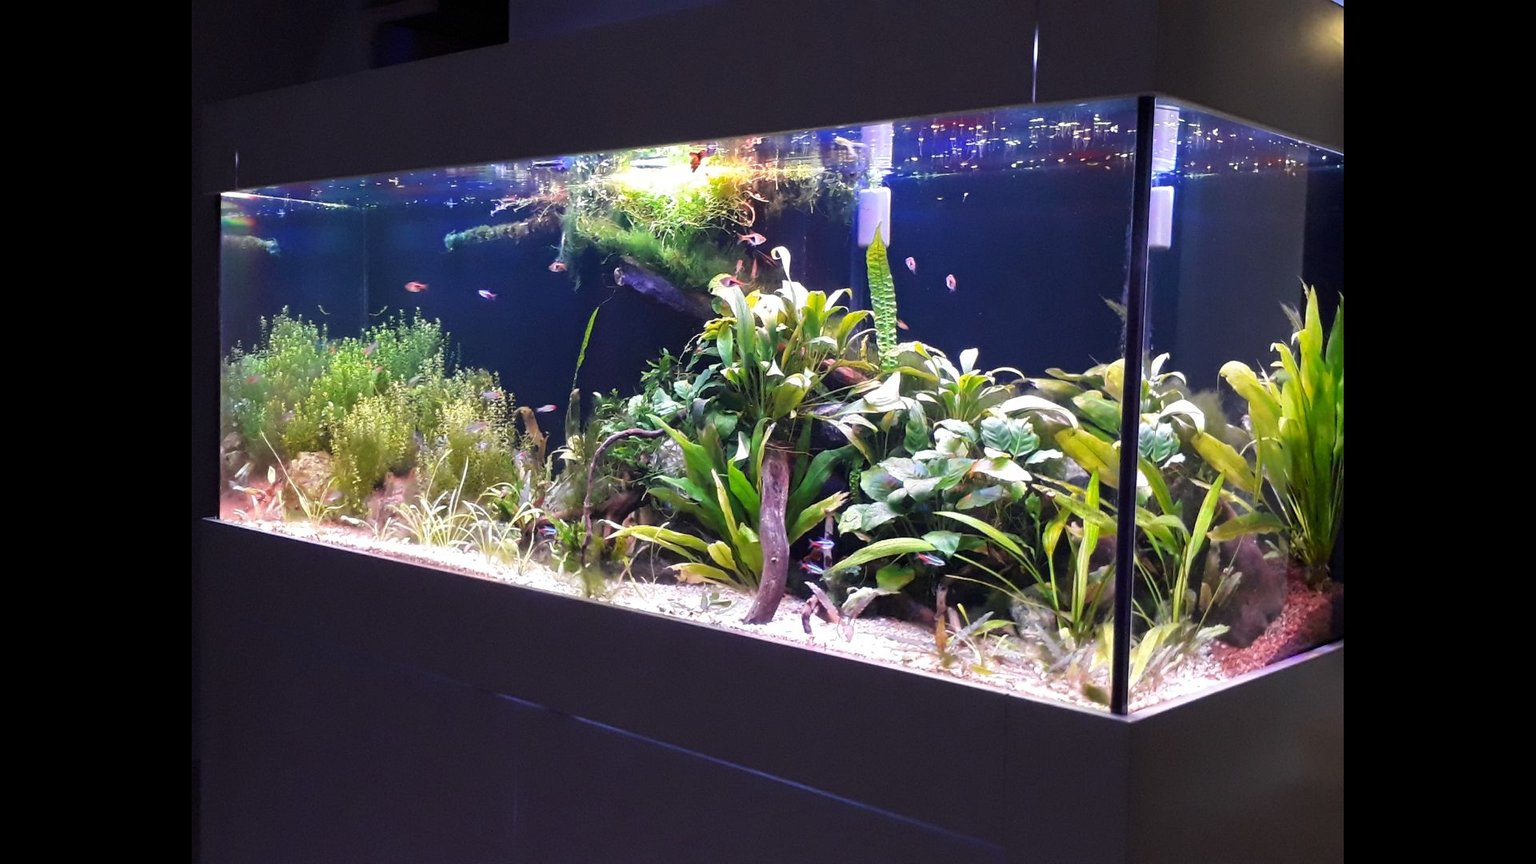 99 gallons planted tank (mostly live plants and fish) - 150*50*50 cm (99 US GALLON), 30 GALLON sump Low tech, DIY Power LED (1 watt) 56 watts fixturePlants: Cryptocoryne Usteriana Red, Sagittaria subulata, Cryptocoryne wendtii brown & green, Bucephalandra Angel Tears, Bucephalandra green wavy, JAVA FERN, Anubias (diff varieties), hydrocotyle tripartita, Bolbitis Heteroclita Difformis, Nymphaea Tiger Lotus (new), Rotala Rotundifolia, Pearlweed, Amazon swords, Pogostemon Helferi, Taiwan Moss.